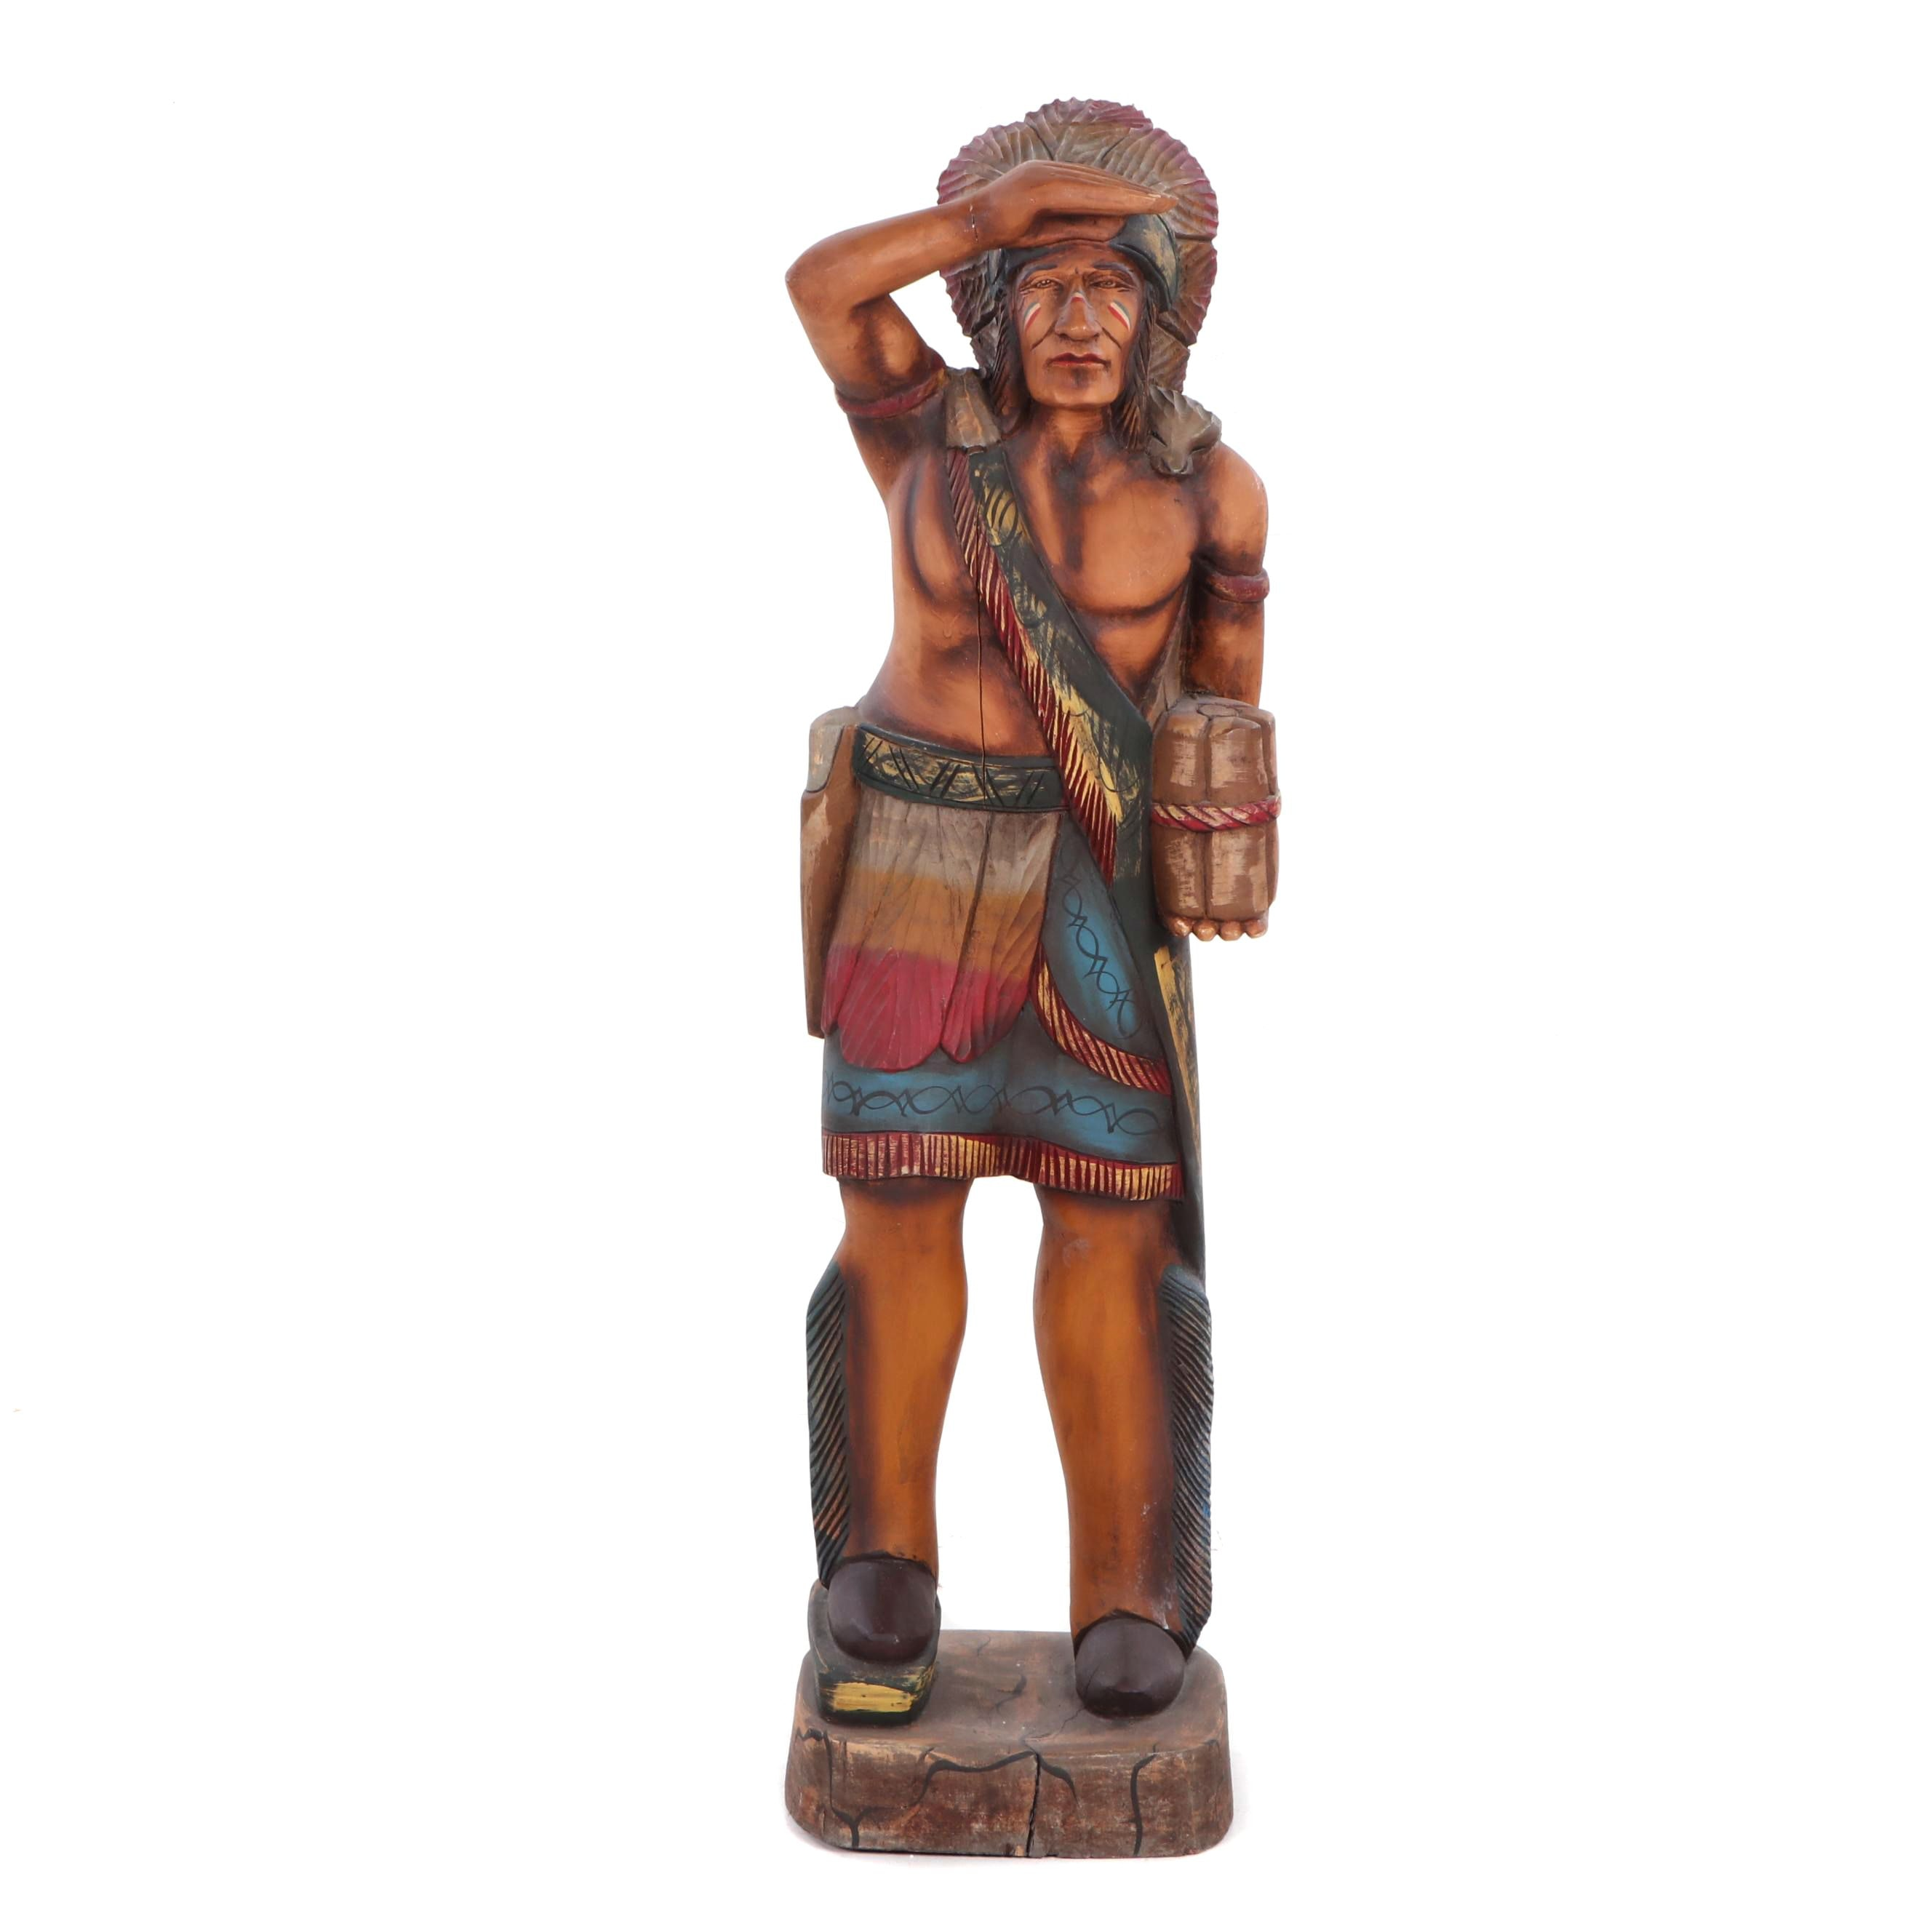 Polychrome and Carved Wood Sculpture of Native American